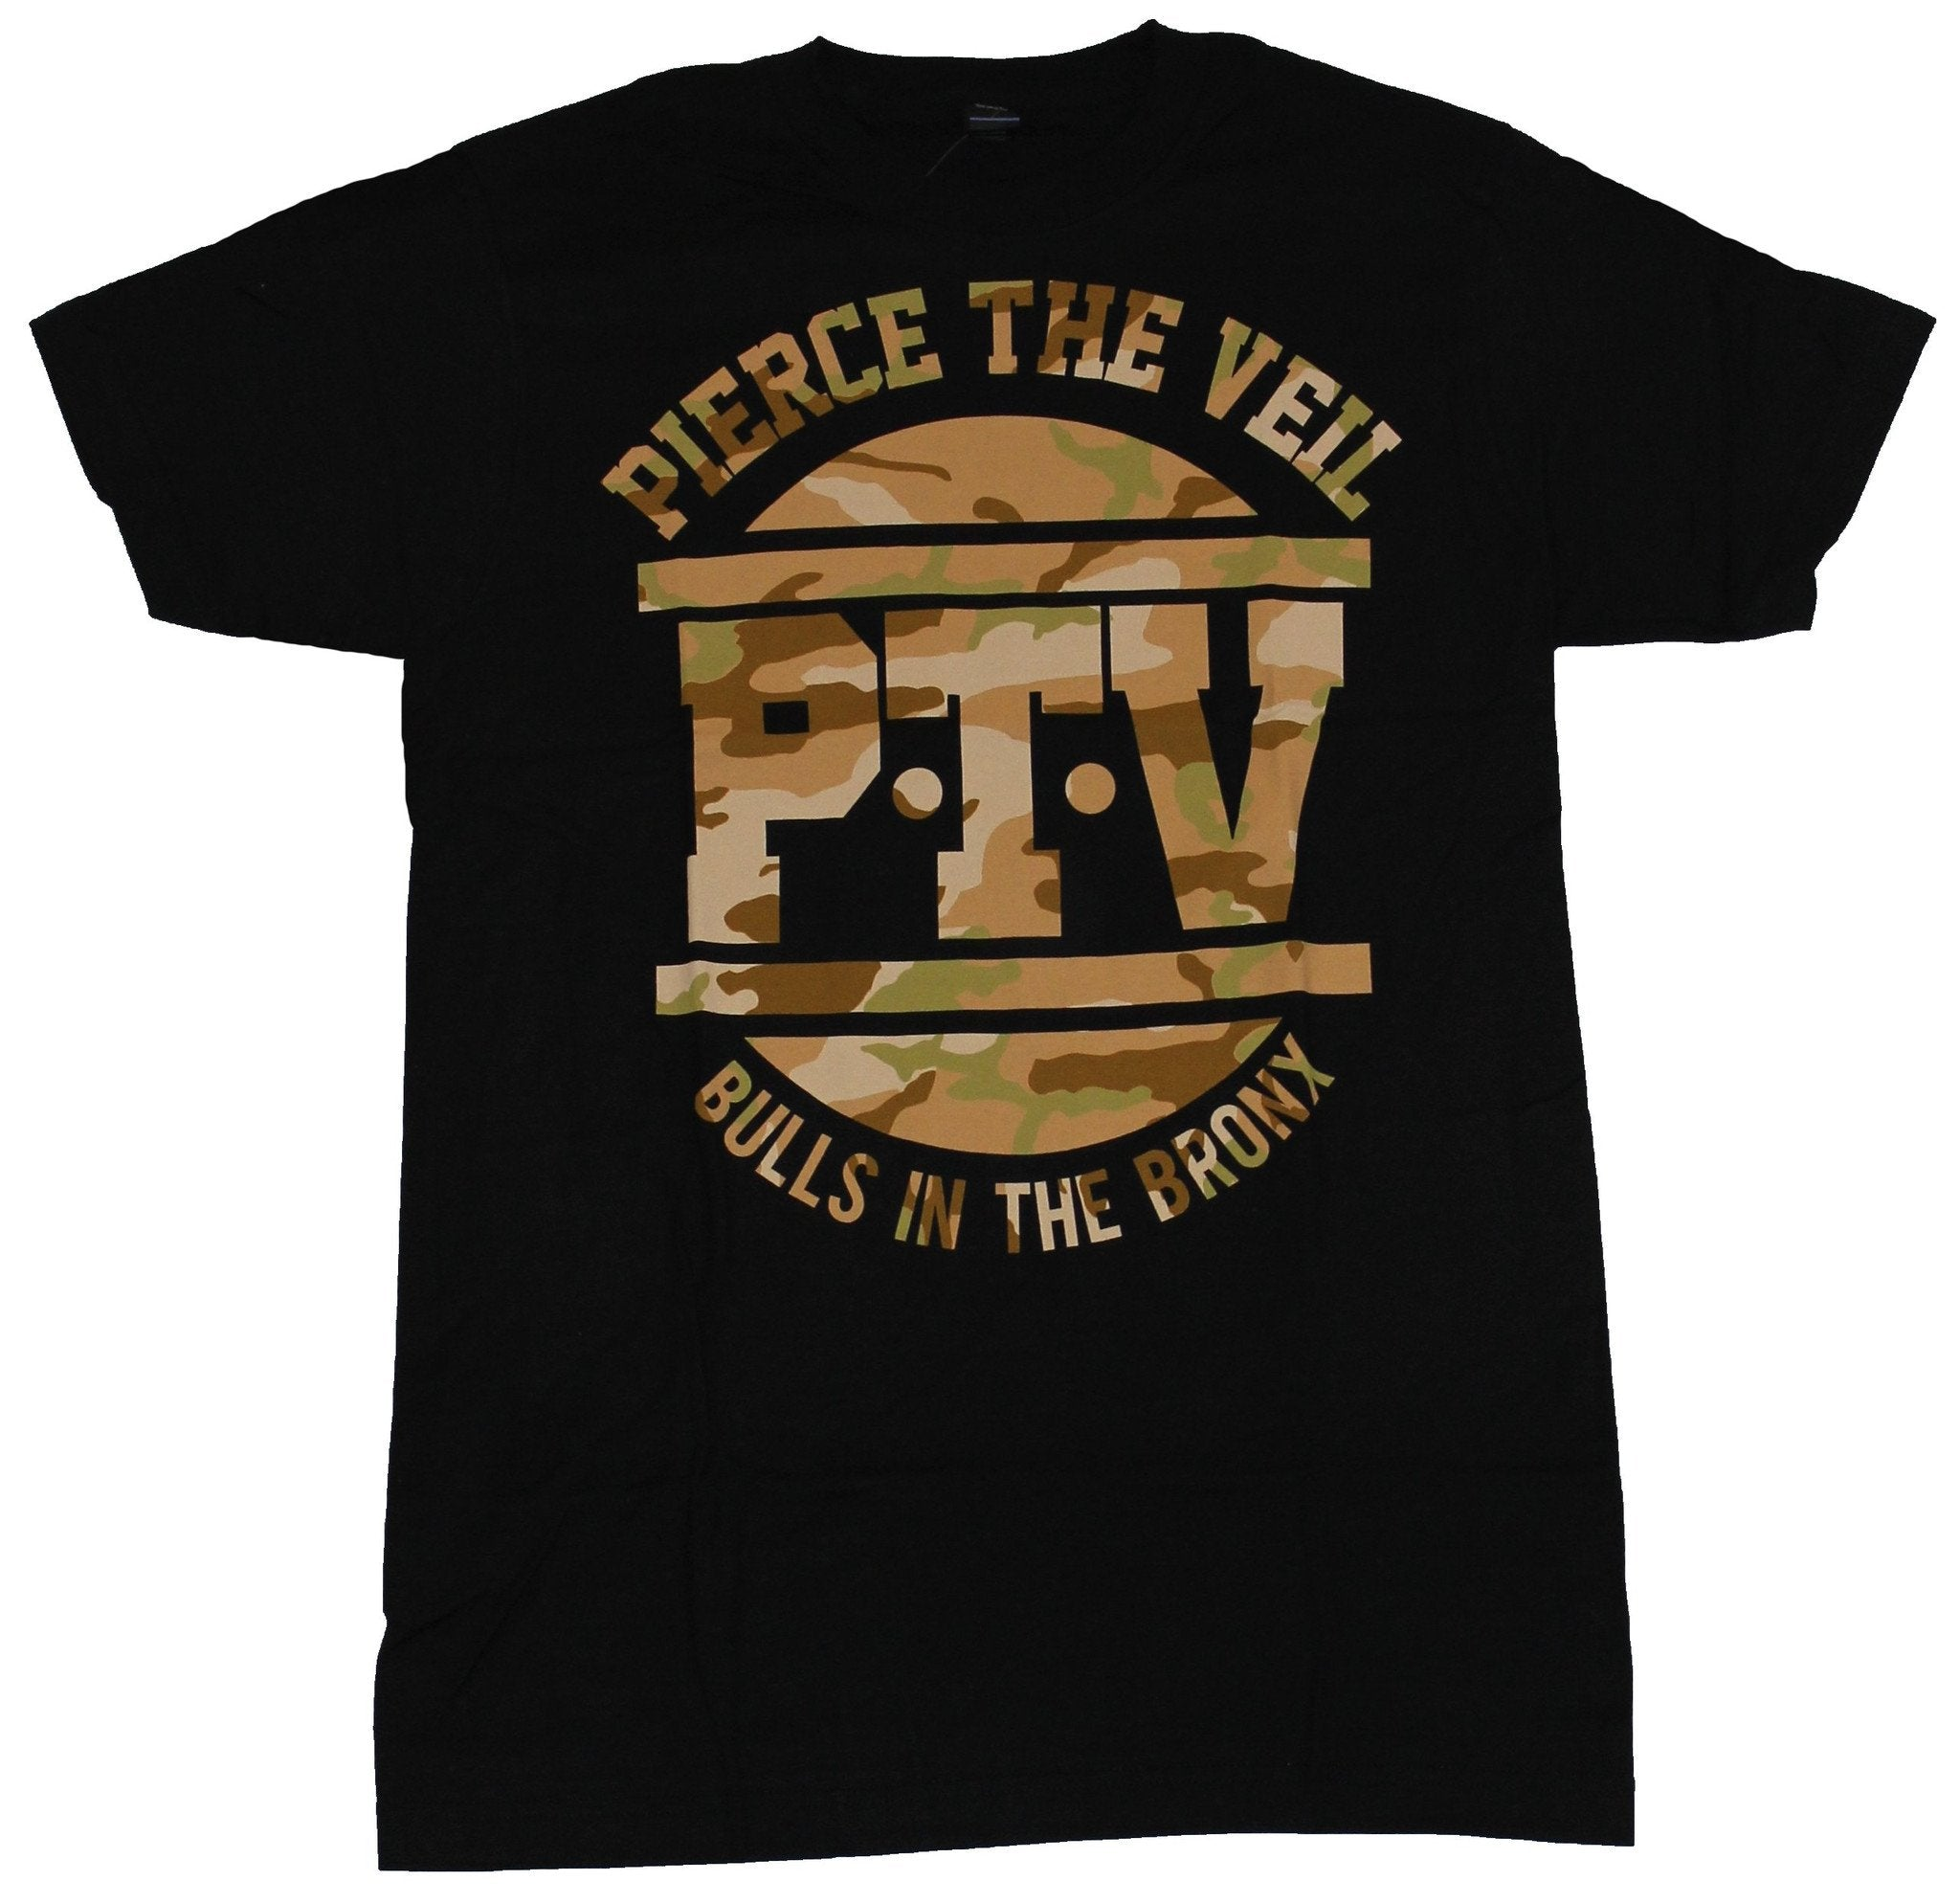 Pierce The Veil Mens T-Shirt - Camo Style PTV Bulls in the Bronx Image